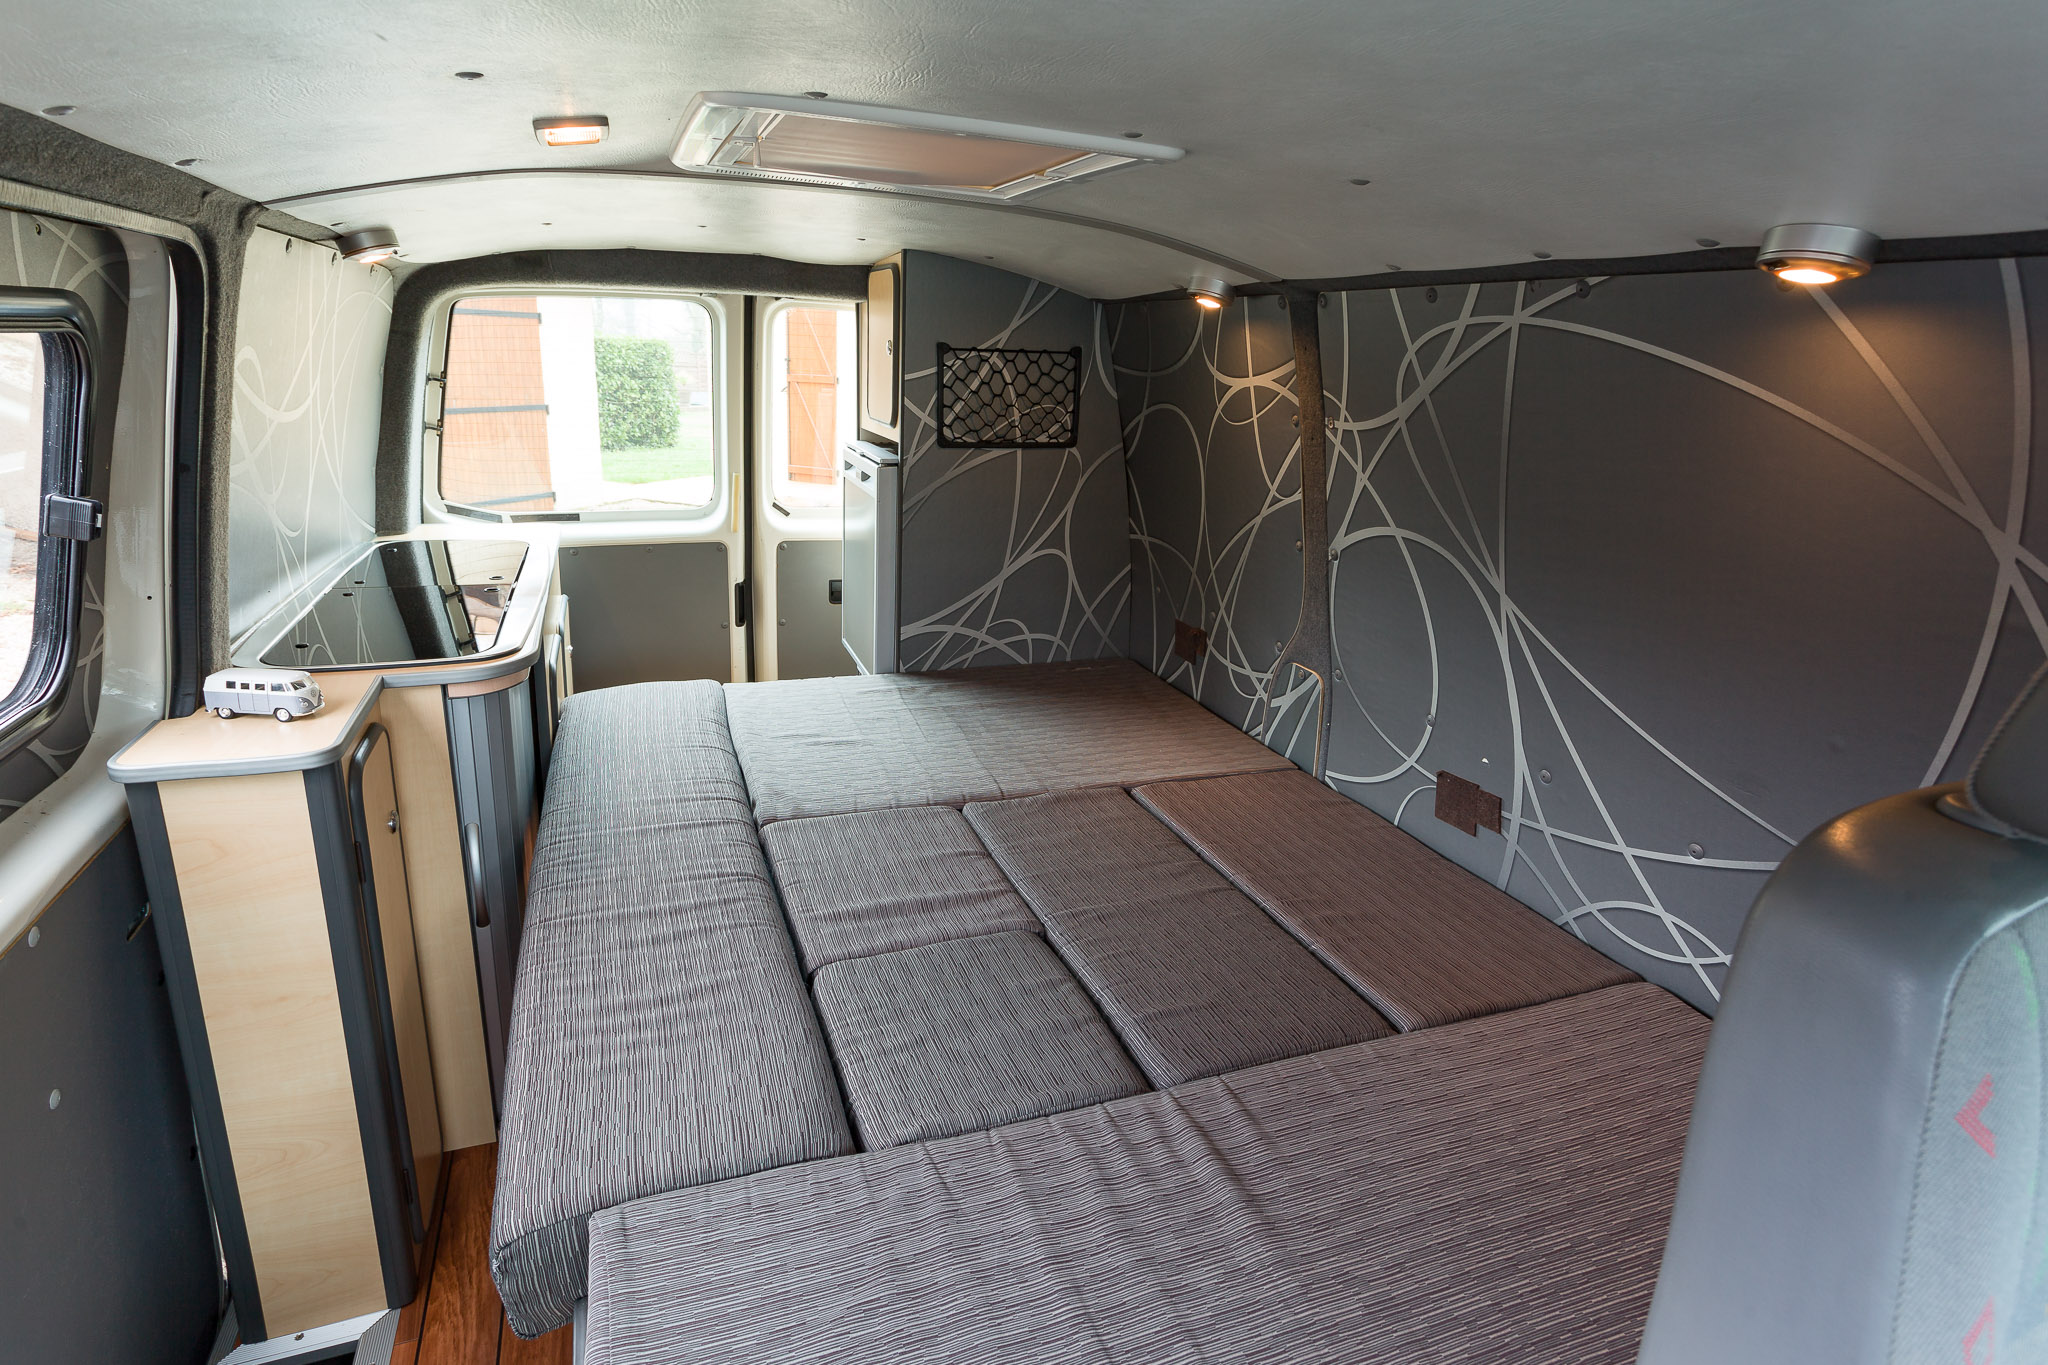 Amenagement interieur camping car for Amenagement interieur